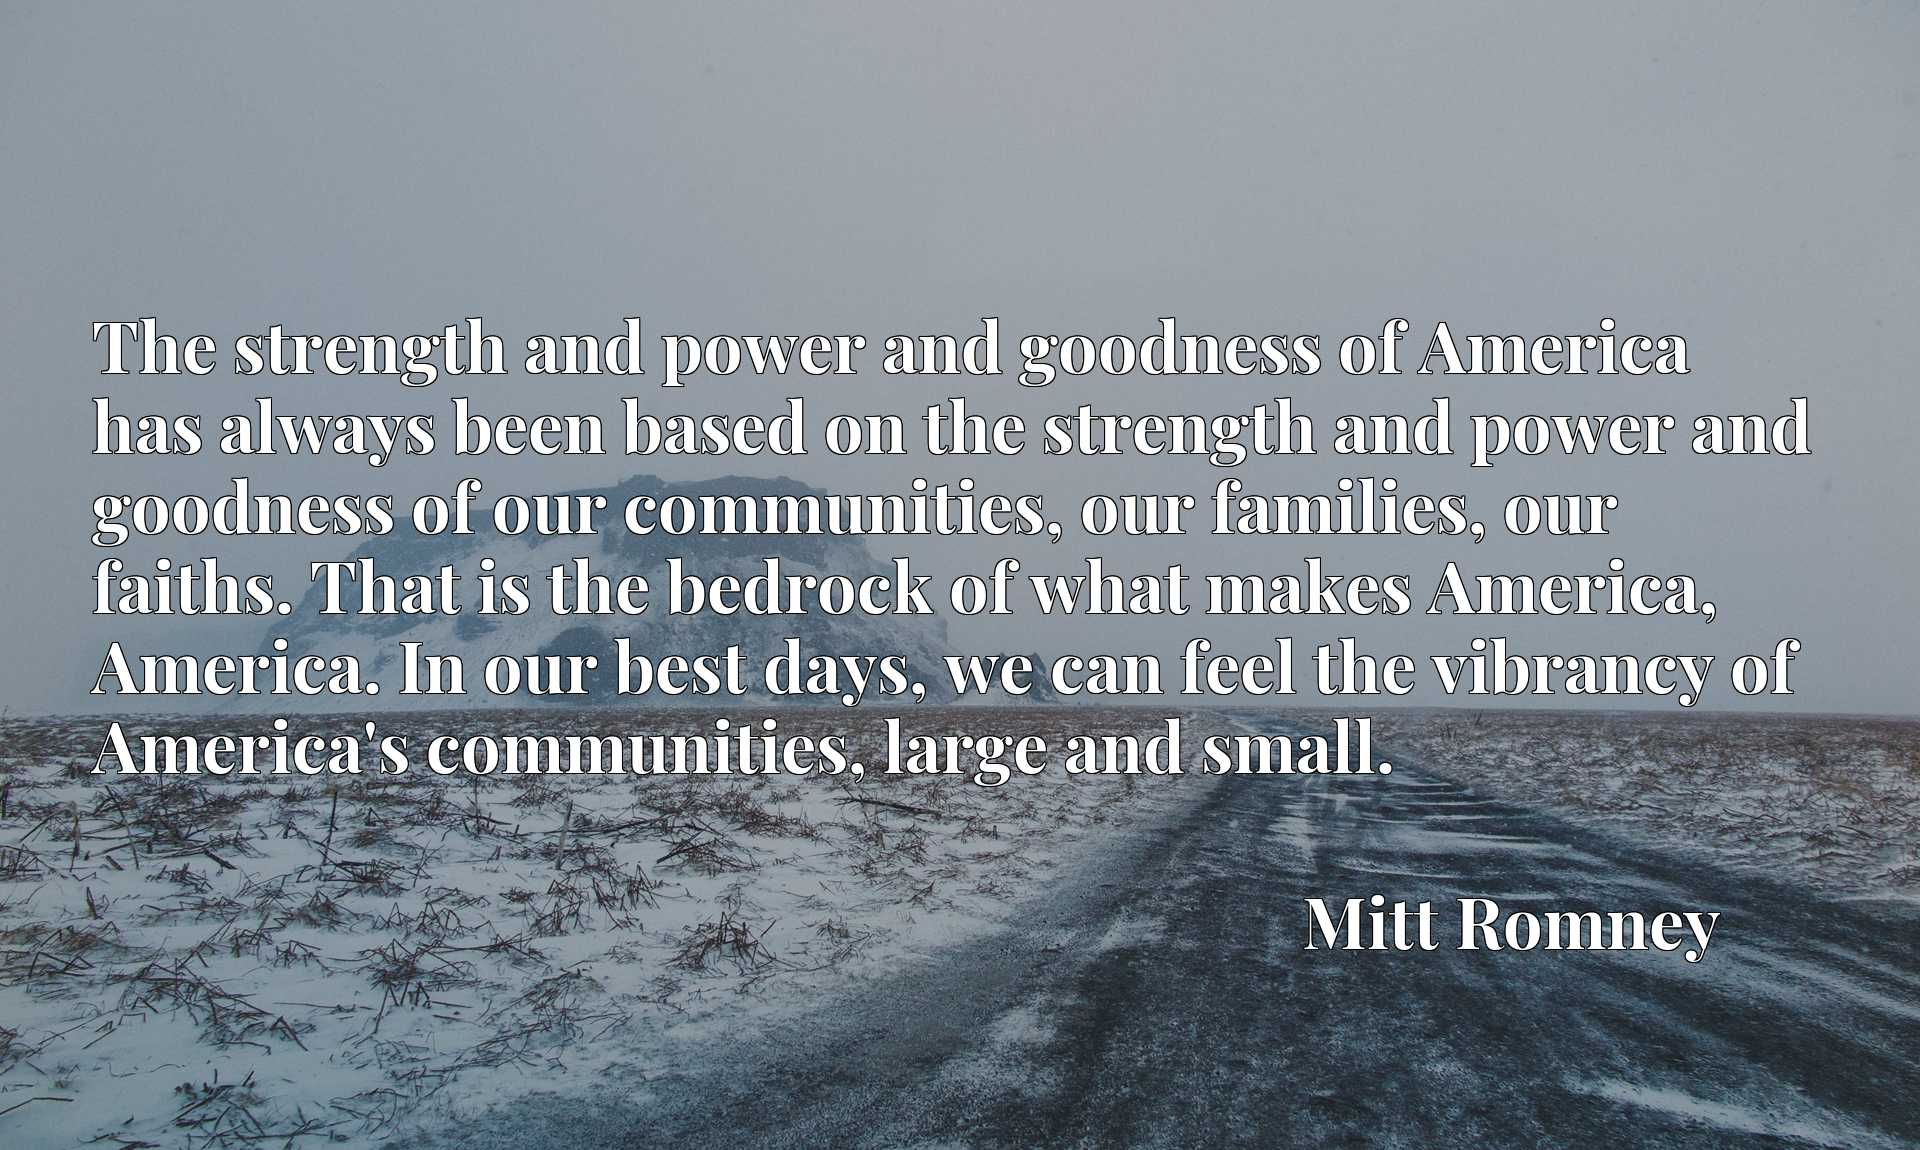 The strength and power and goodness of America has always been based on the strength and power and goodness of our communities, our families, our faiths. That is the bedrock of what makes America, America. In our best days, we can feel the vibrancy of America's communities, large and small.